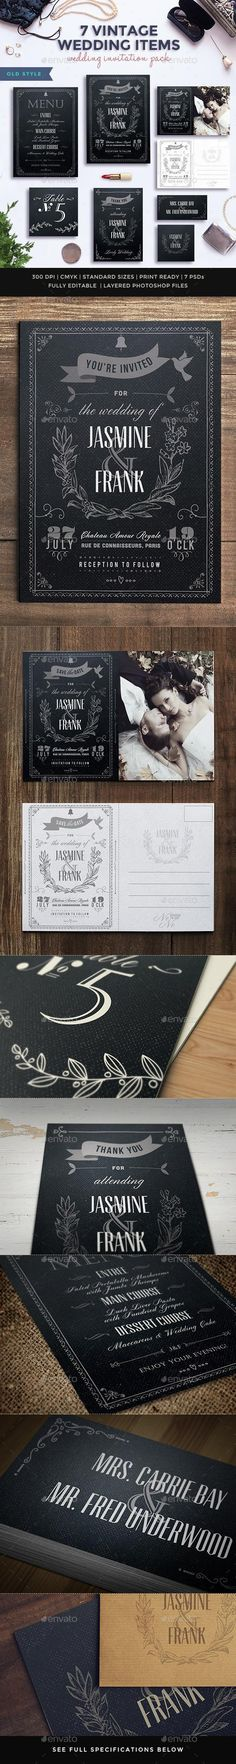 Wedding Postcard Invitation  Wedding Postcard Edit Text And Font